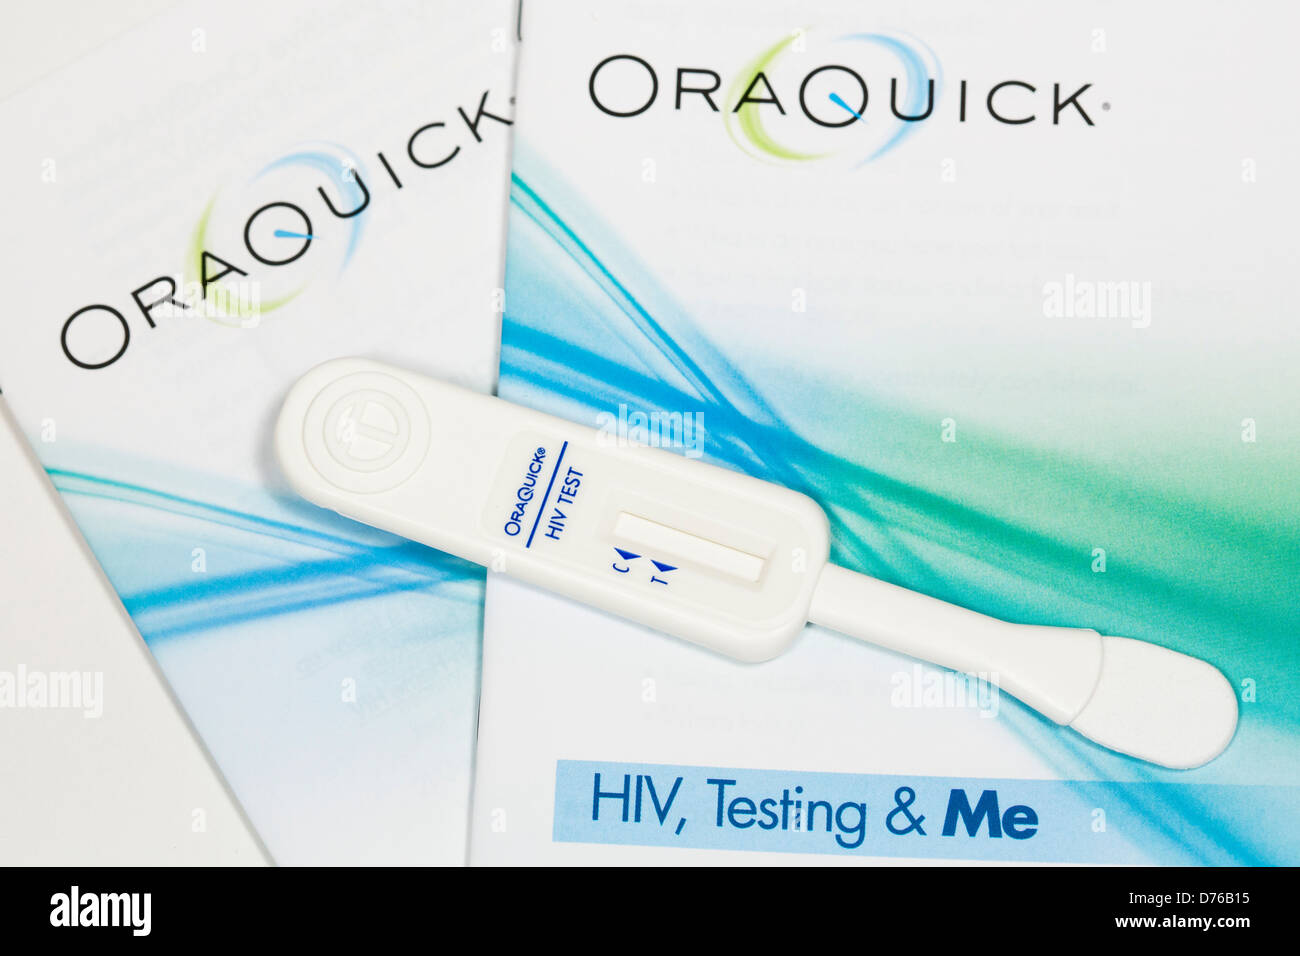 Oraquick Stock Photos & Oraquick Stock Images - Alamy